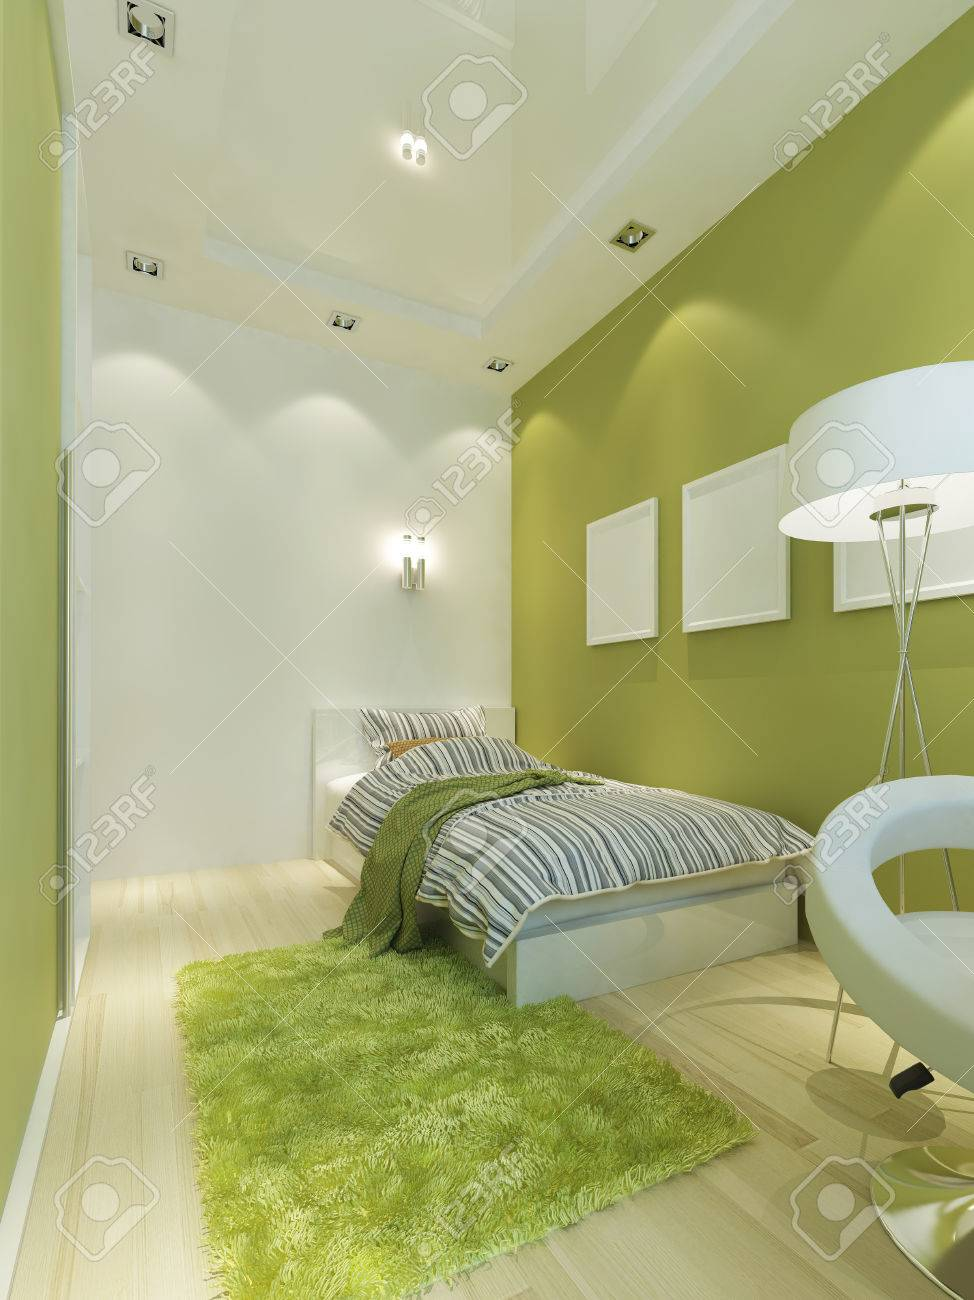 Children\'s Room Contemporary-style In Light Green Color With.. Stock ...